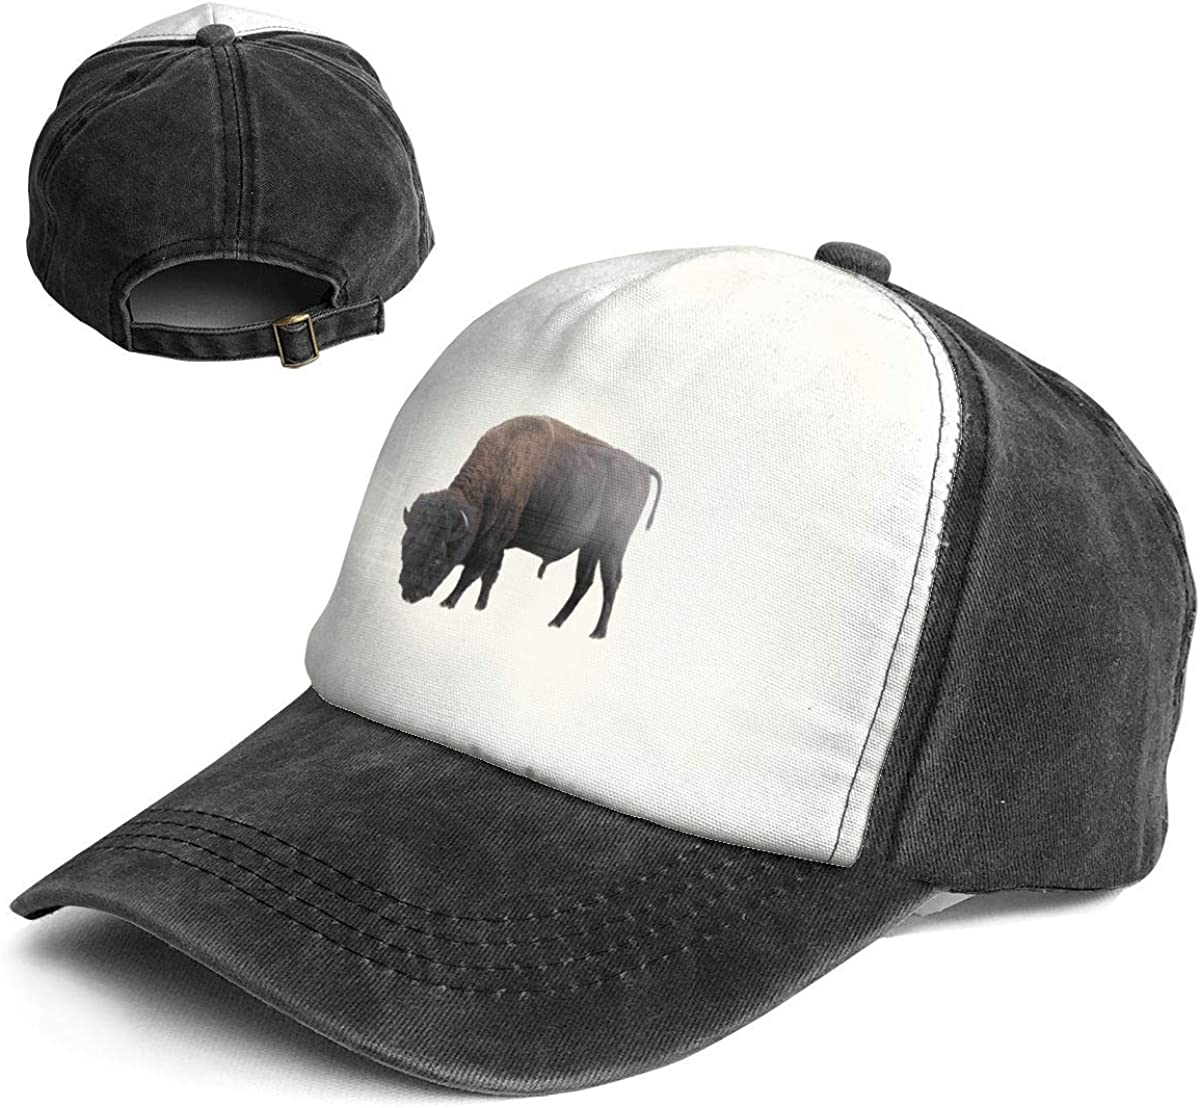 Cool American Bison Trend Printing Cowboy Hat Fashion Baseball Cap for Men and Women